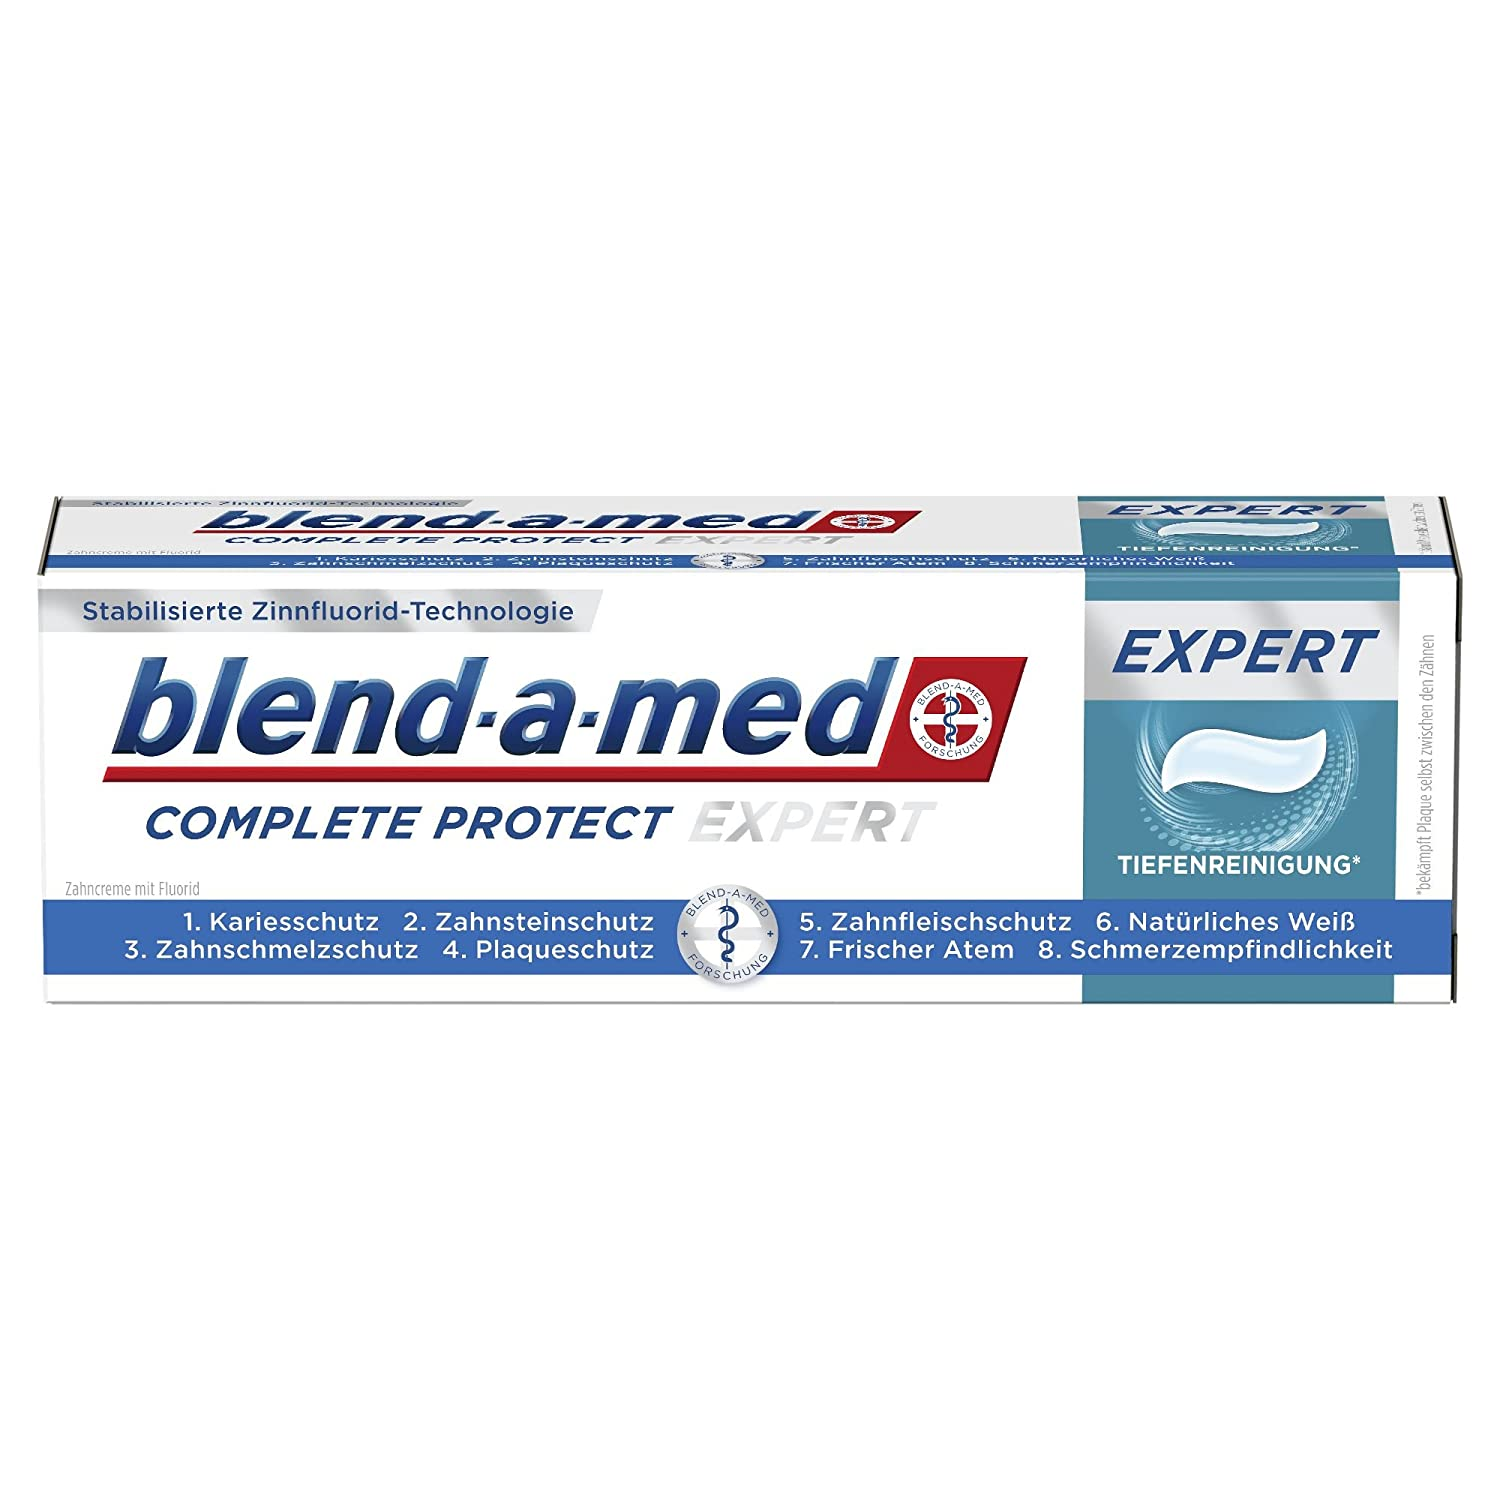 Amazon.de: Blend-a-med Complete Protect Expert Tiefenreinigung ...